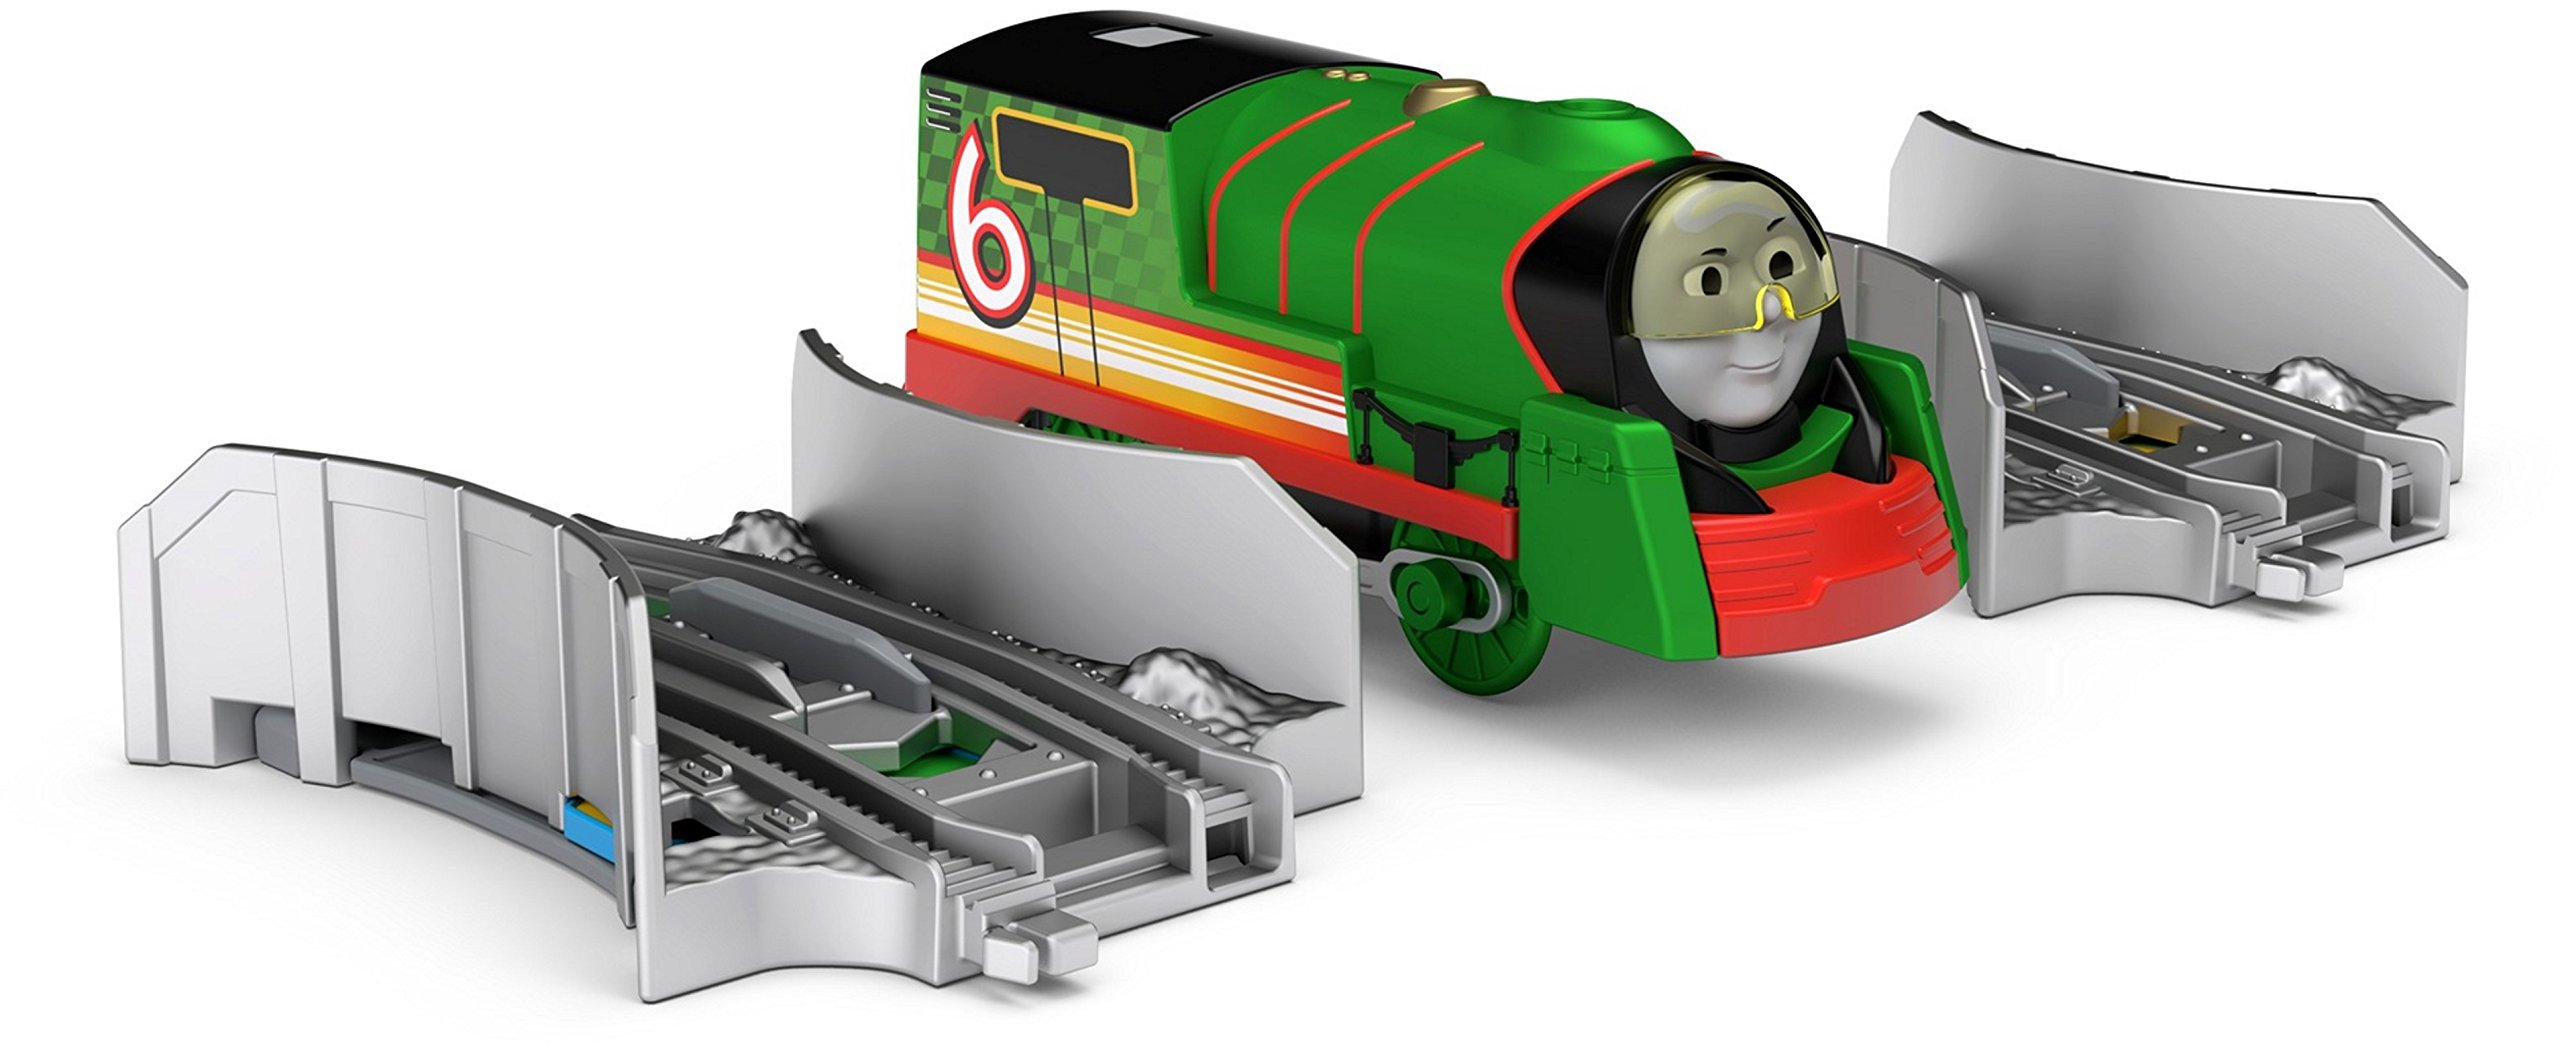 Fisher-Price Thomas & Friends TrackMaster, Turbo Percy Pack